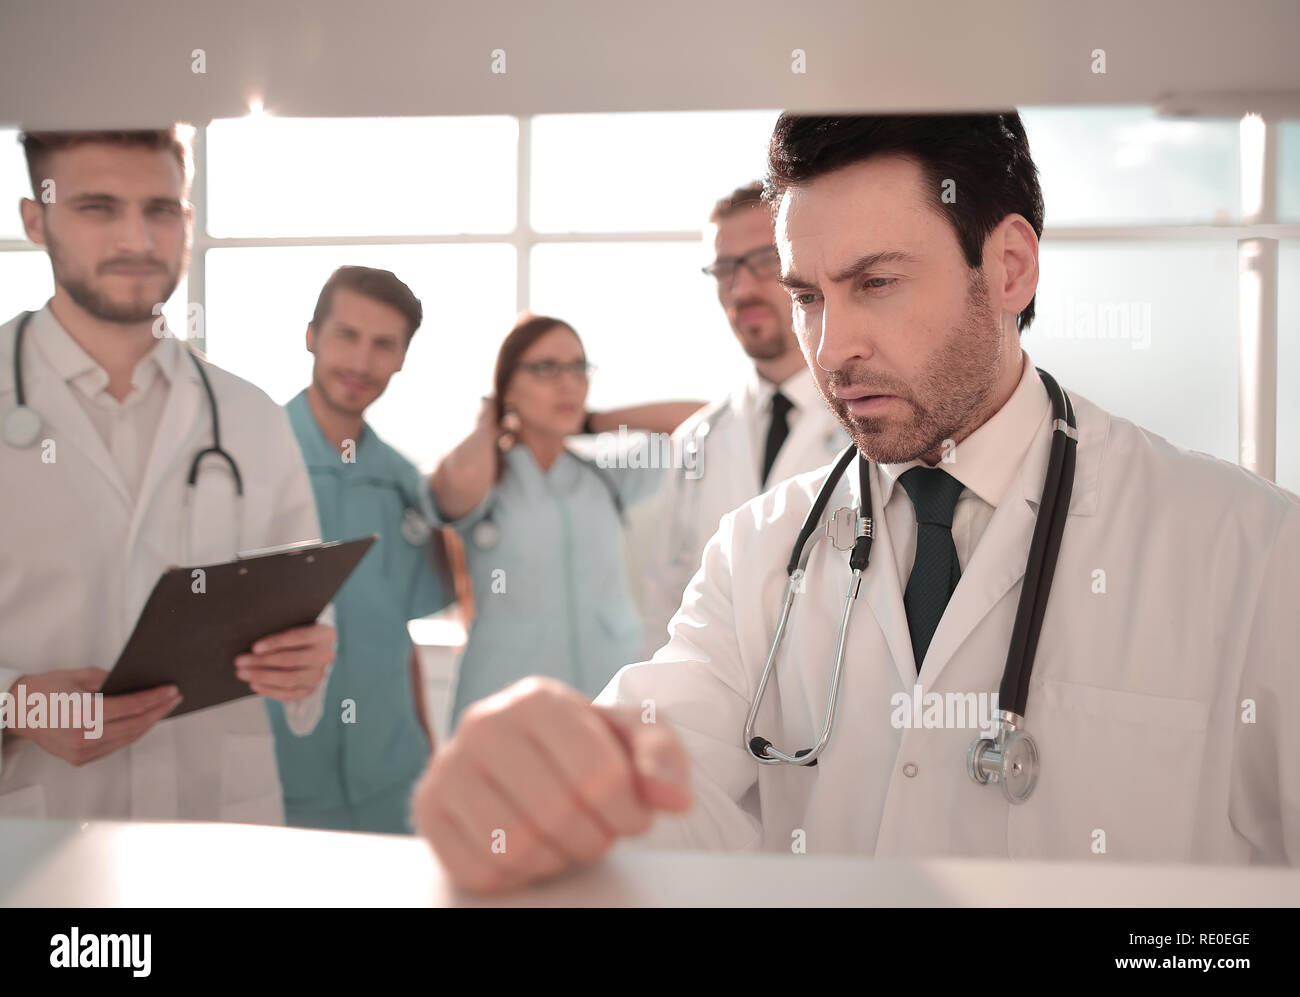 Scientist in uniform doing tests in laboratory - Stock Image